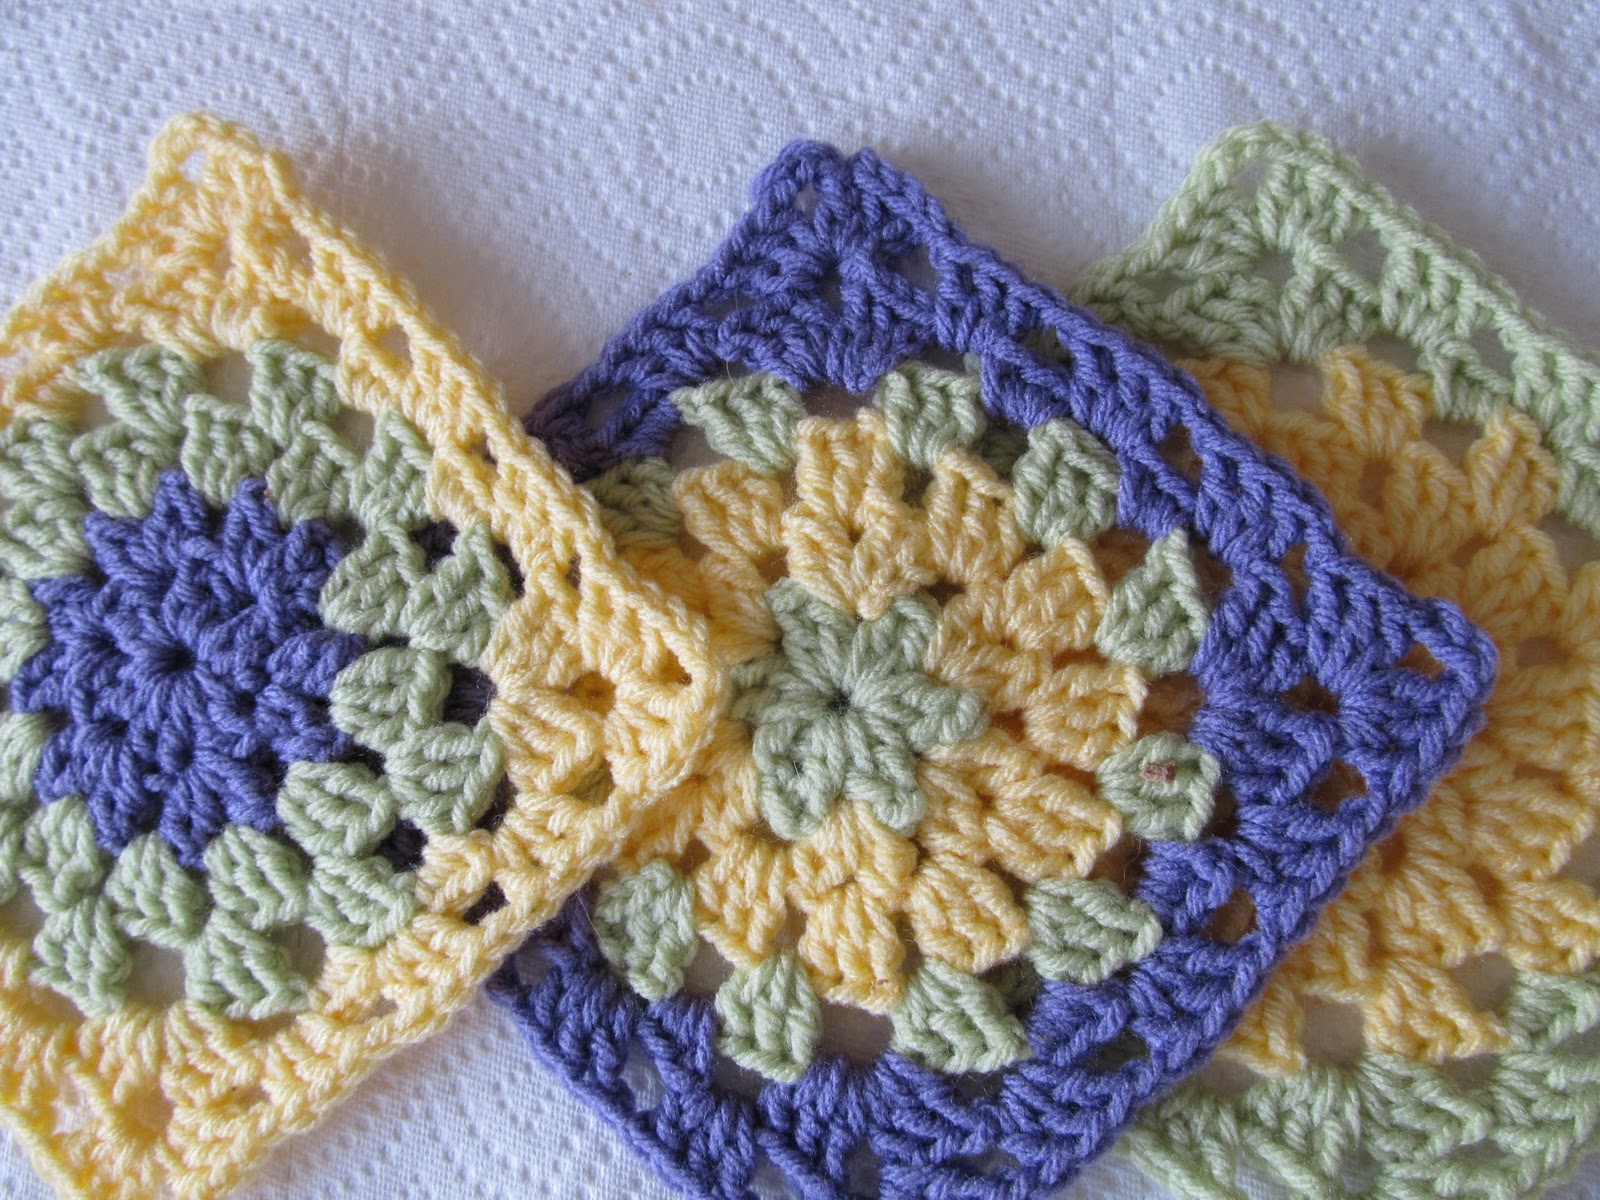 Crochet For Charity : Free Crochet Square Patterns For Your Charity Endeavors